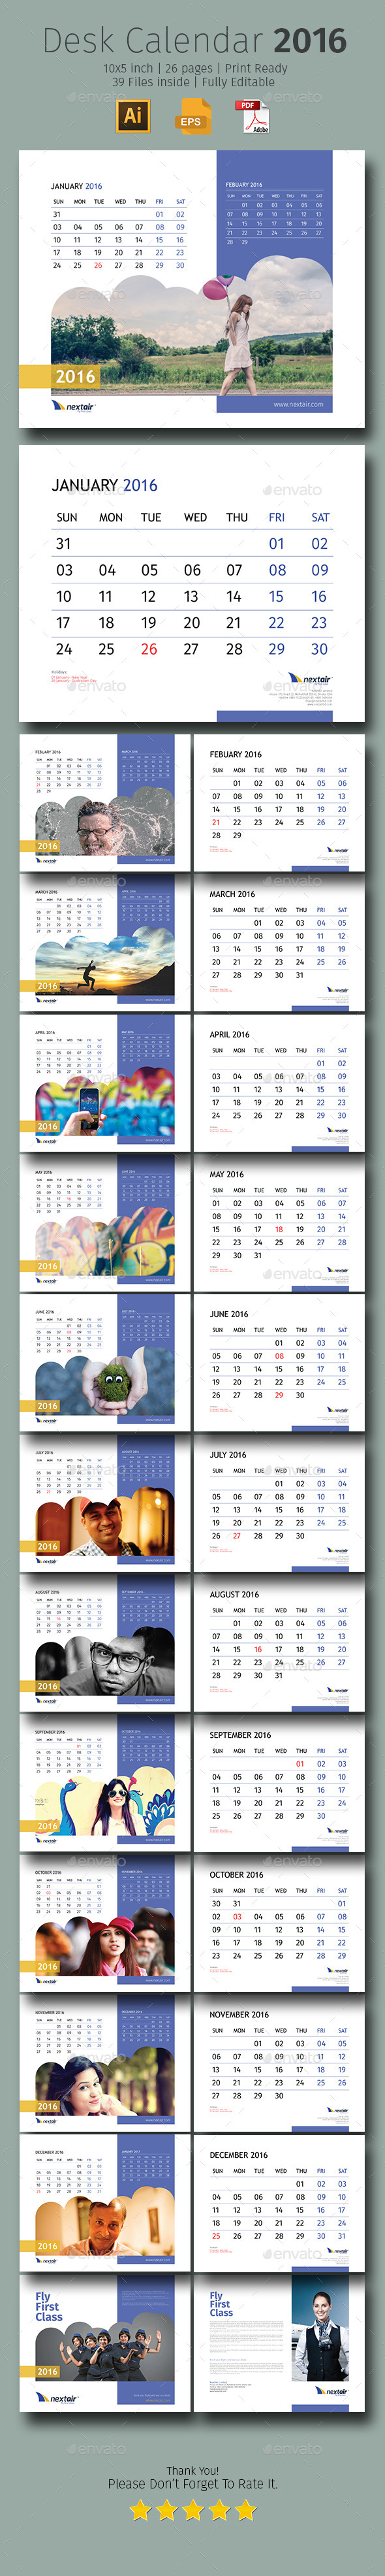 Table Calendar 2016 : Desk calendar design download http graphicriver